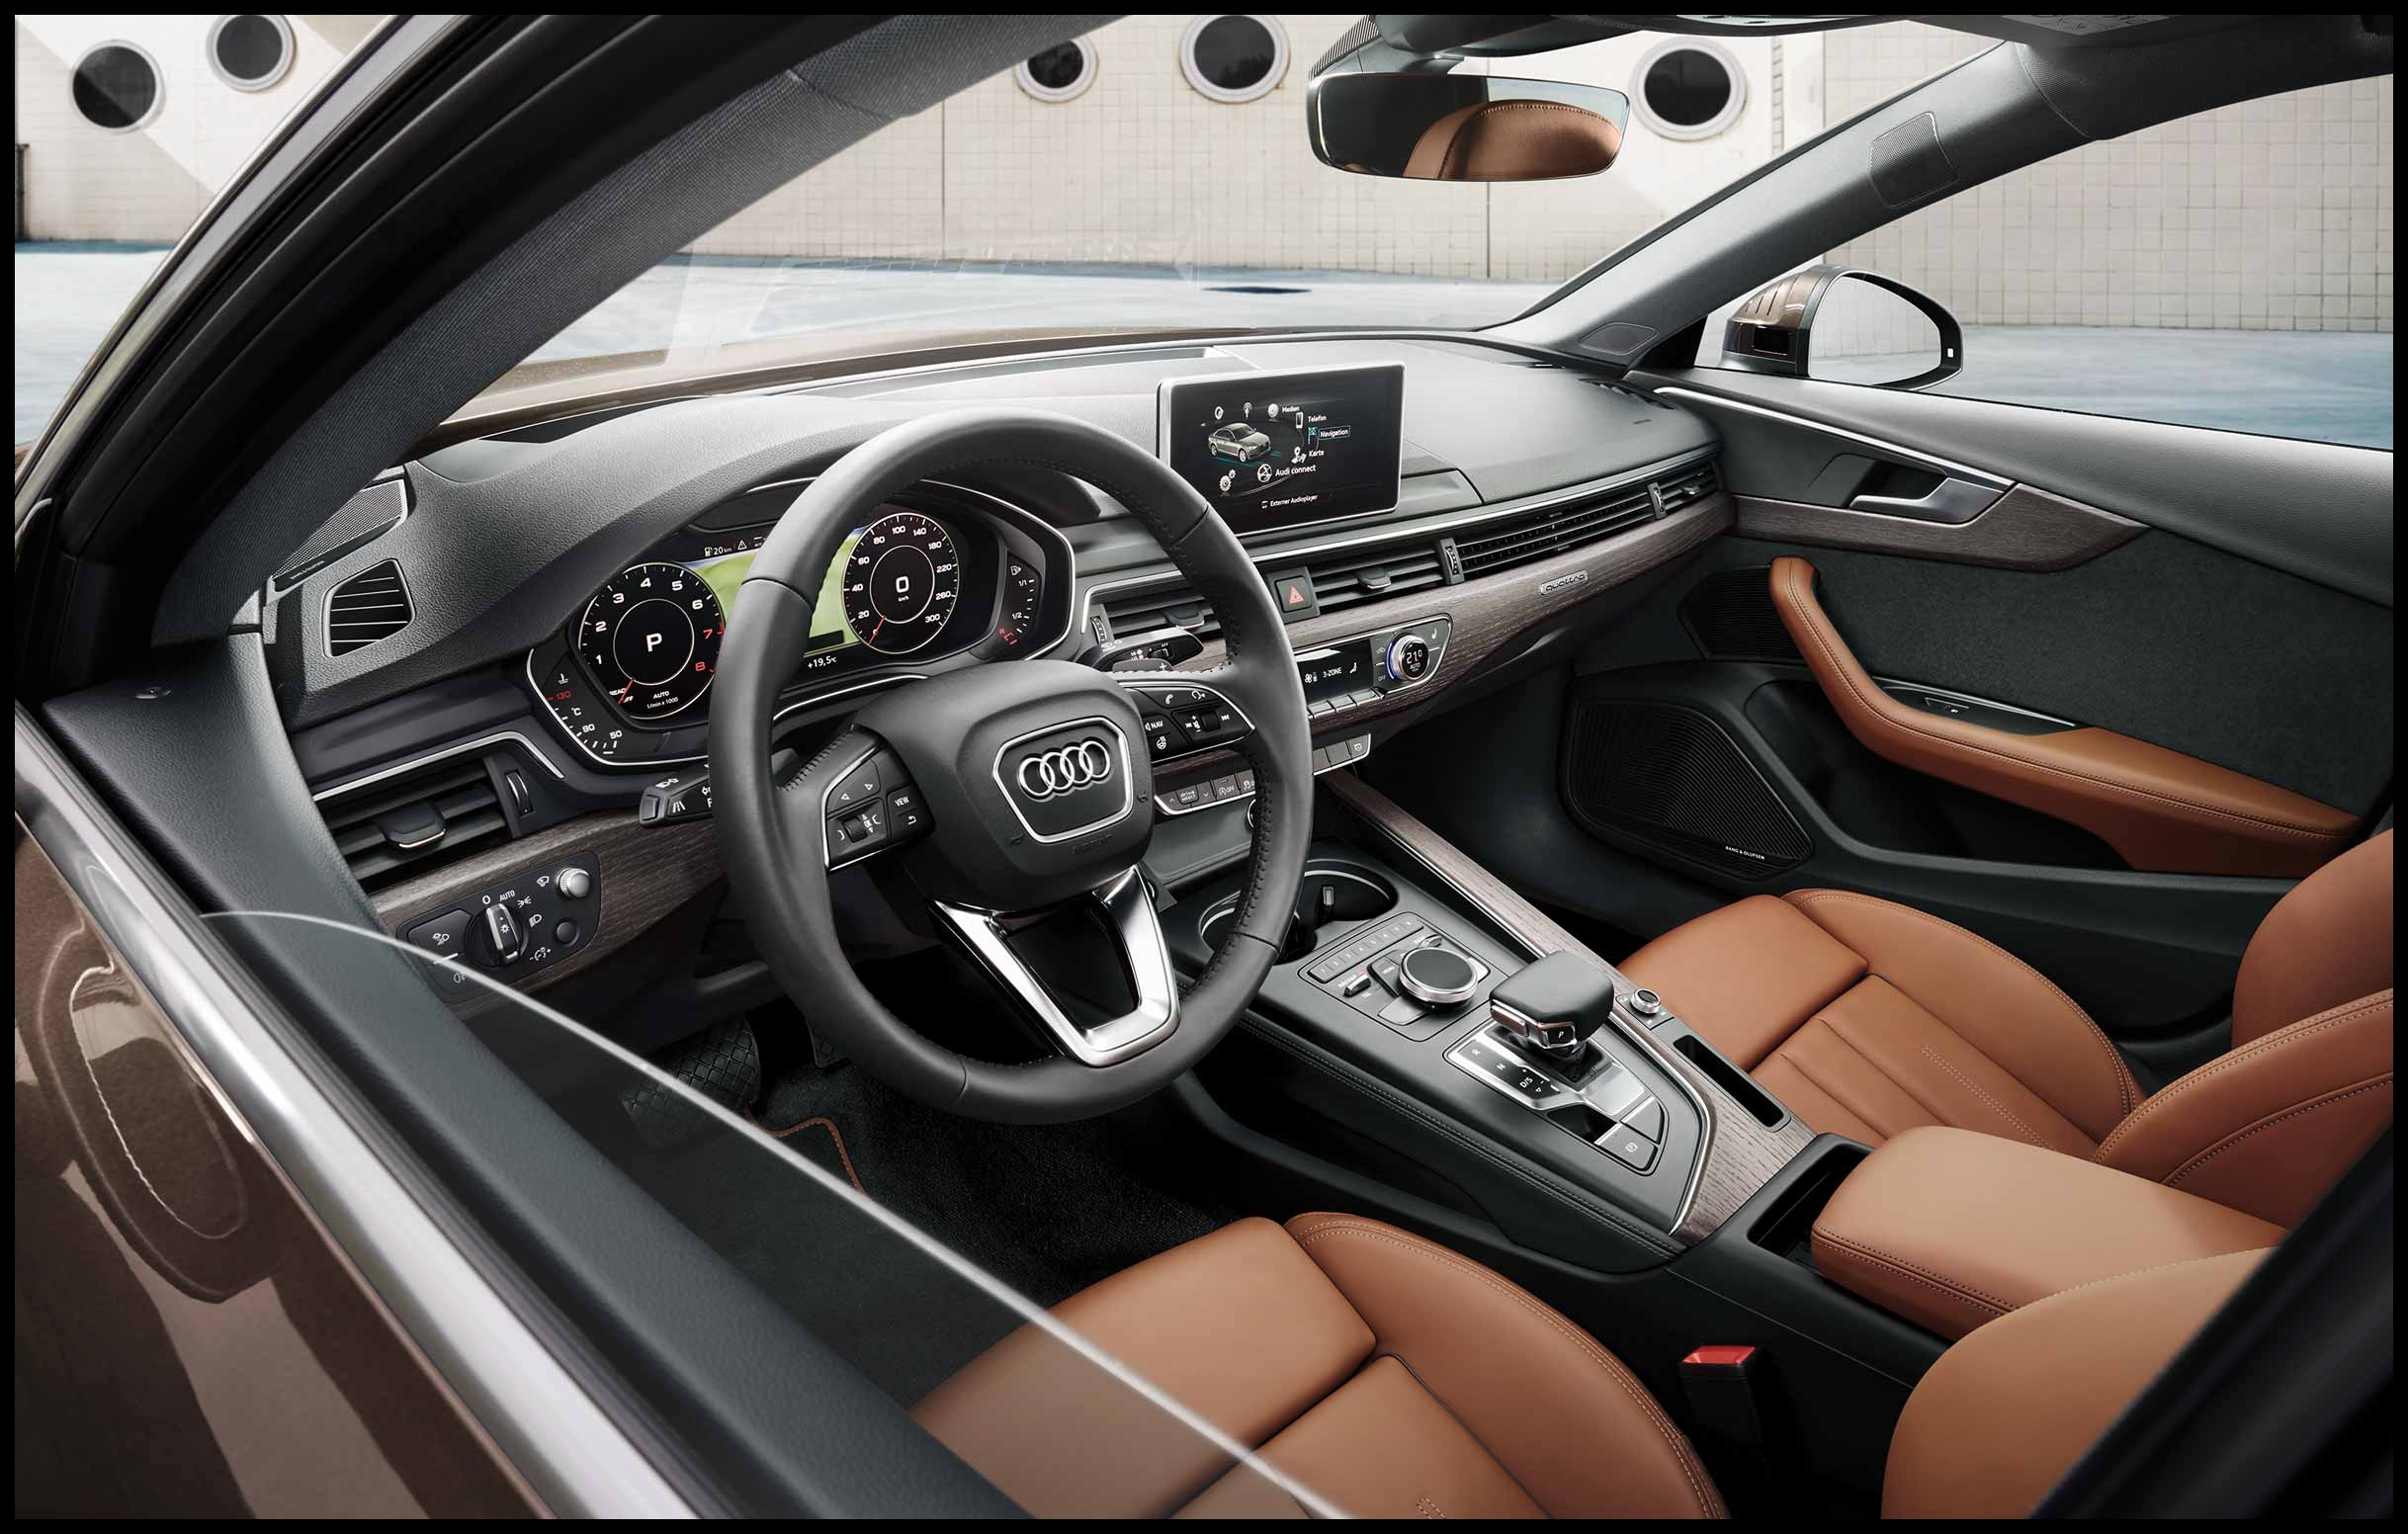 Audi A4 Saloon interior